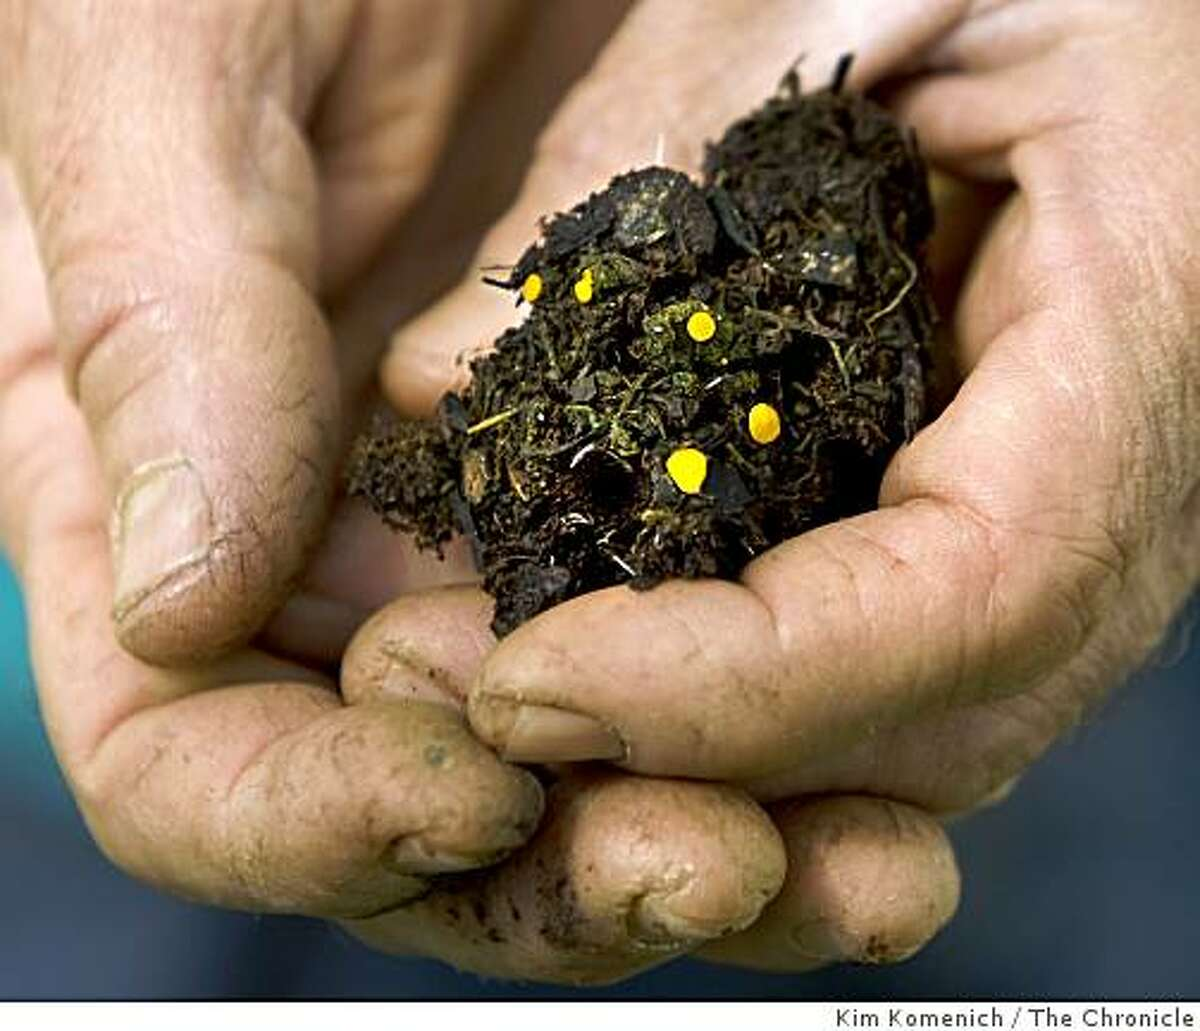 Agronomist Bob Shaffer holds compost made from San Francisco food scraps at Green String Farms outside Petaluma, Calif. Interspersed with the brown material is naturally-growing cyanobacteria (green) and fungus (yellow) -- important components of the compost.